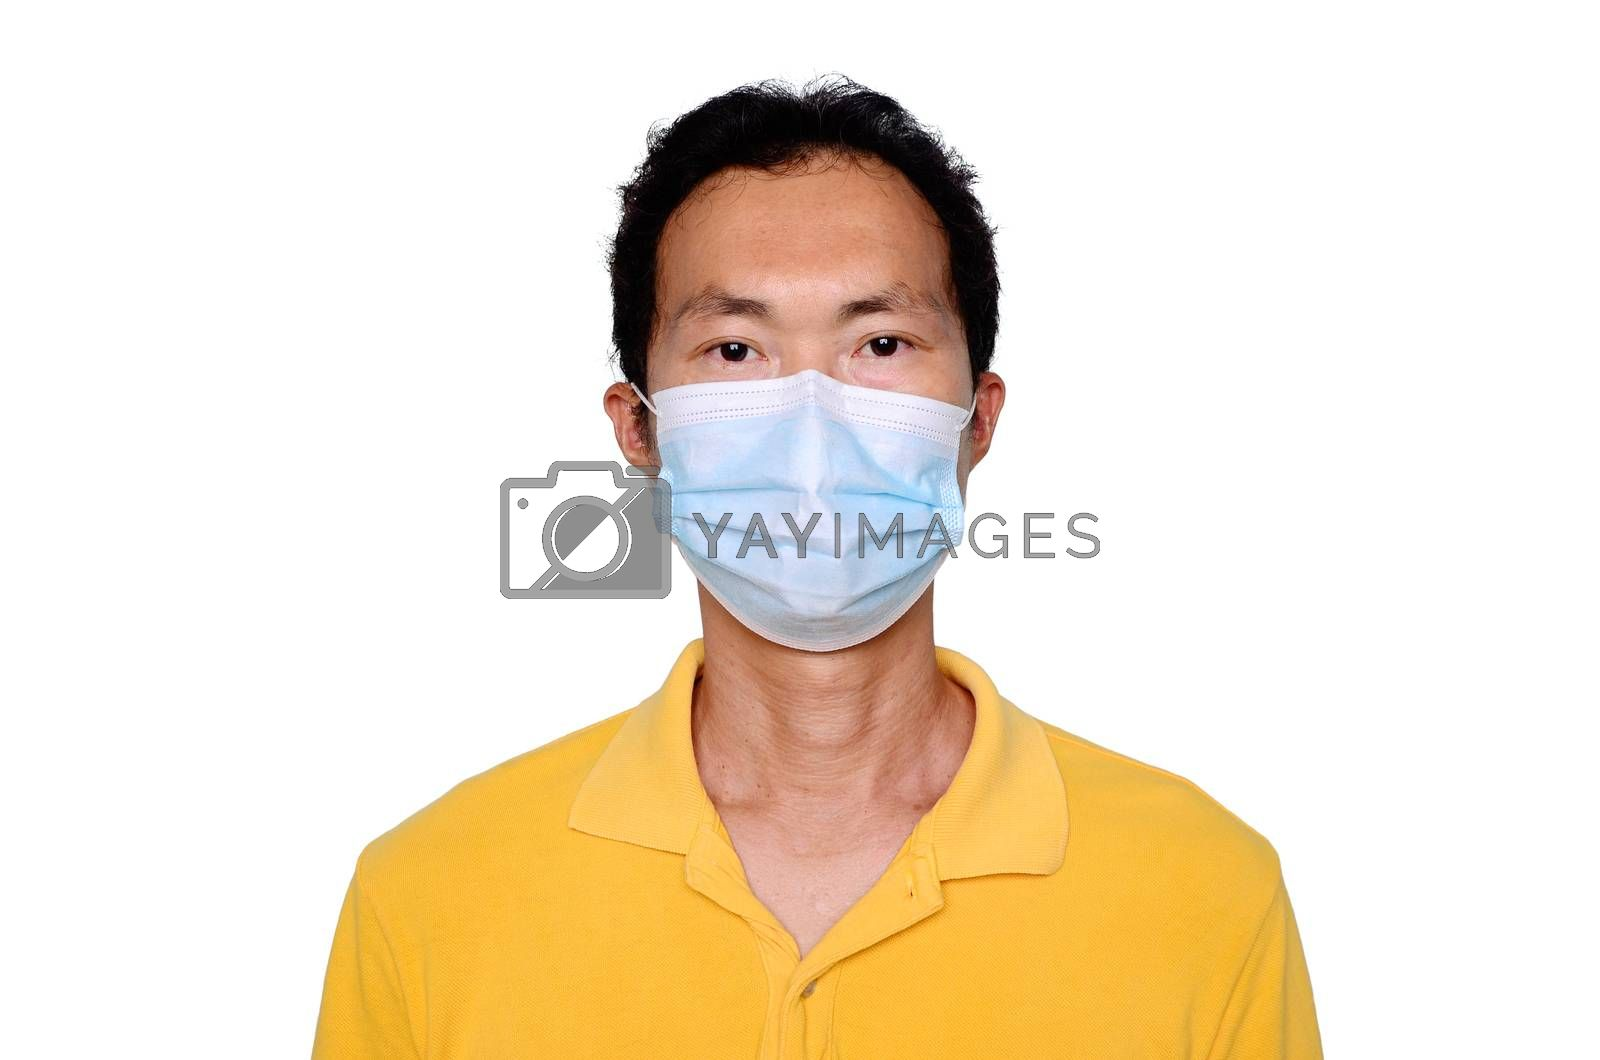 Asian middle age man in blue t-shirt wearing medical mask, isolated on white background. Coronavirus or covid-19 protection concept.